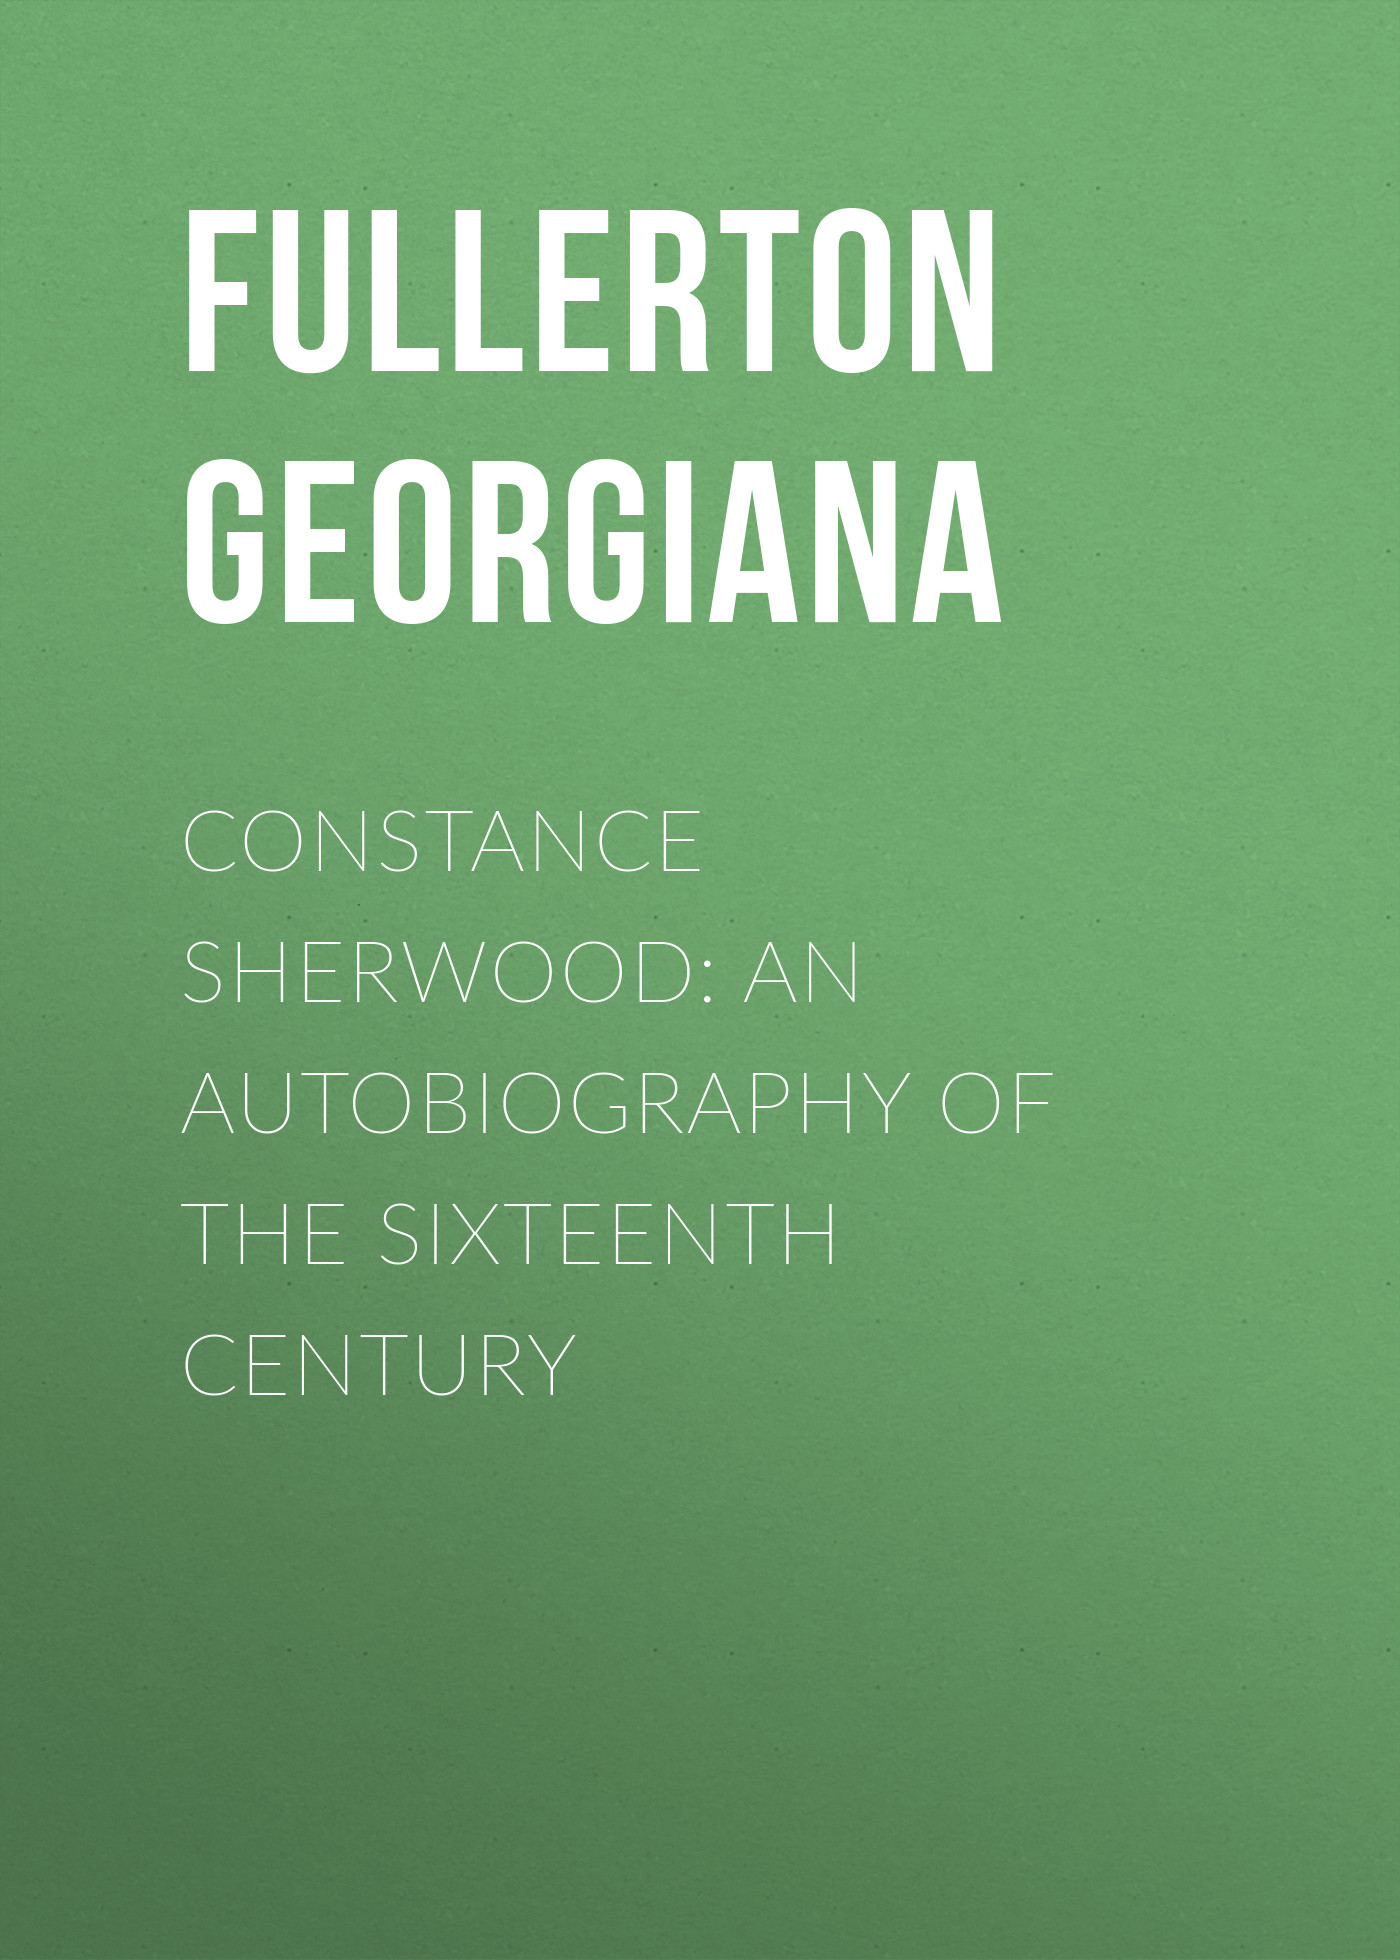 Fullerton Georgiana Constance Sherwood: An Autobiography of the Sixteenth Century fullerton j pocketful of dreams isbn 9781786491381